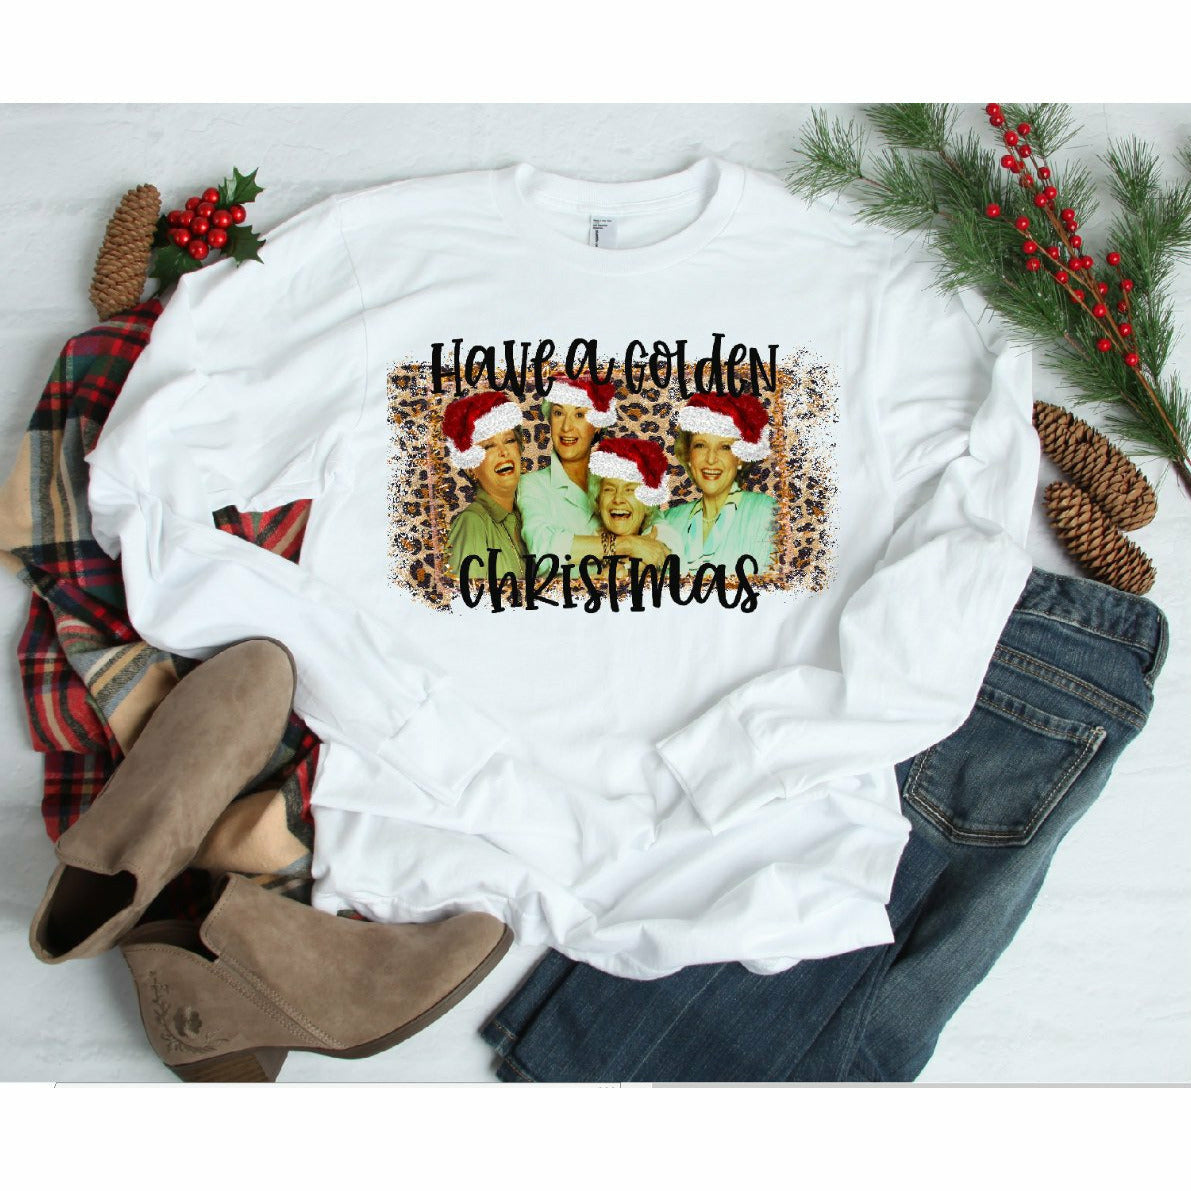 Have a Golden Christmas Tee or long sleeve